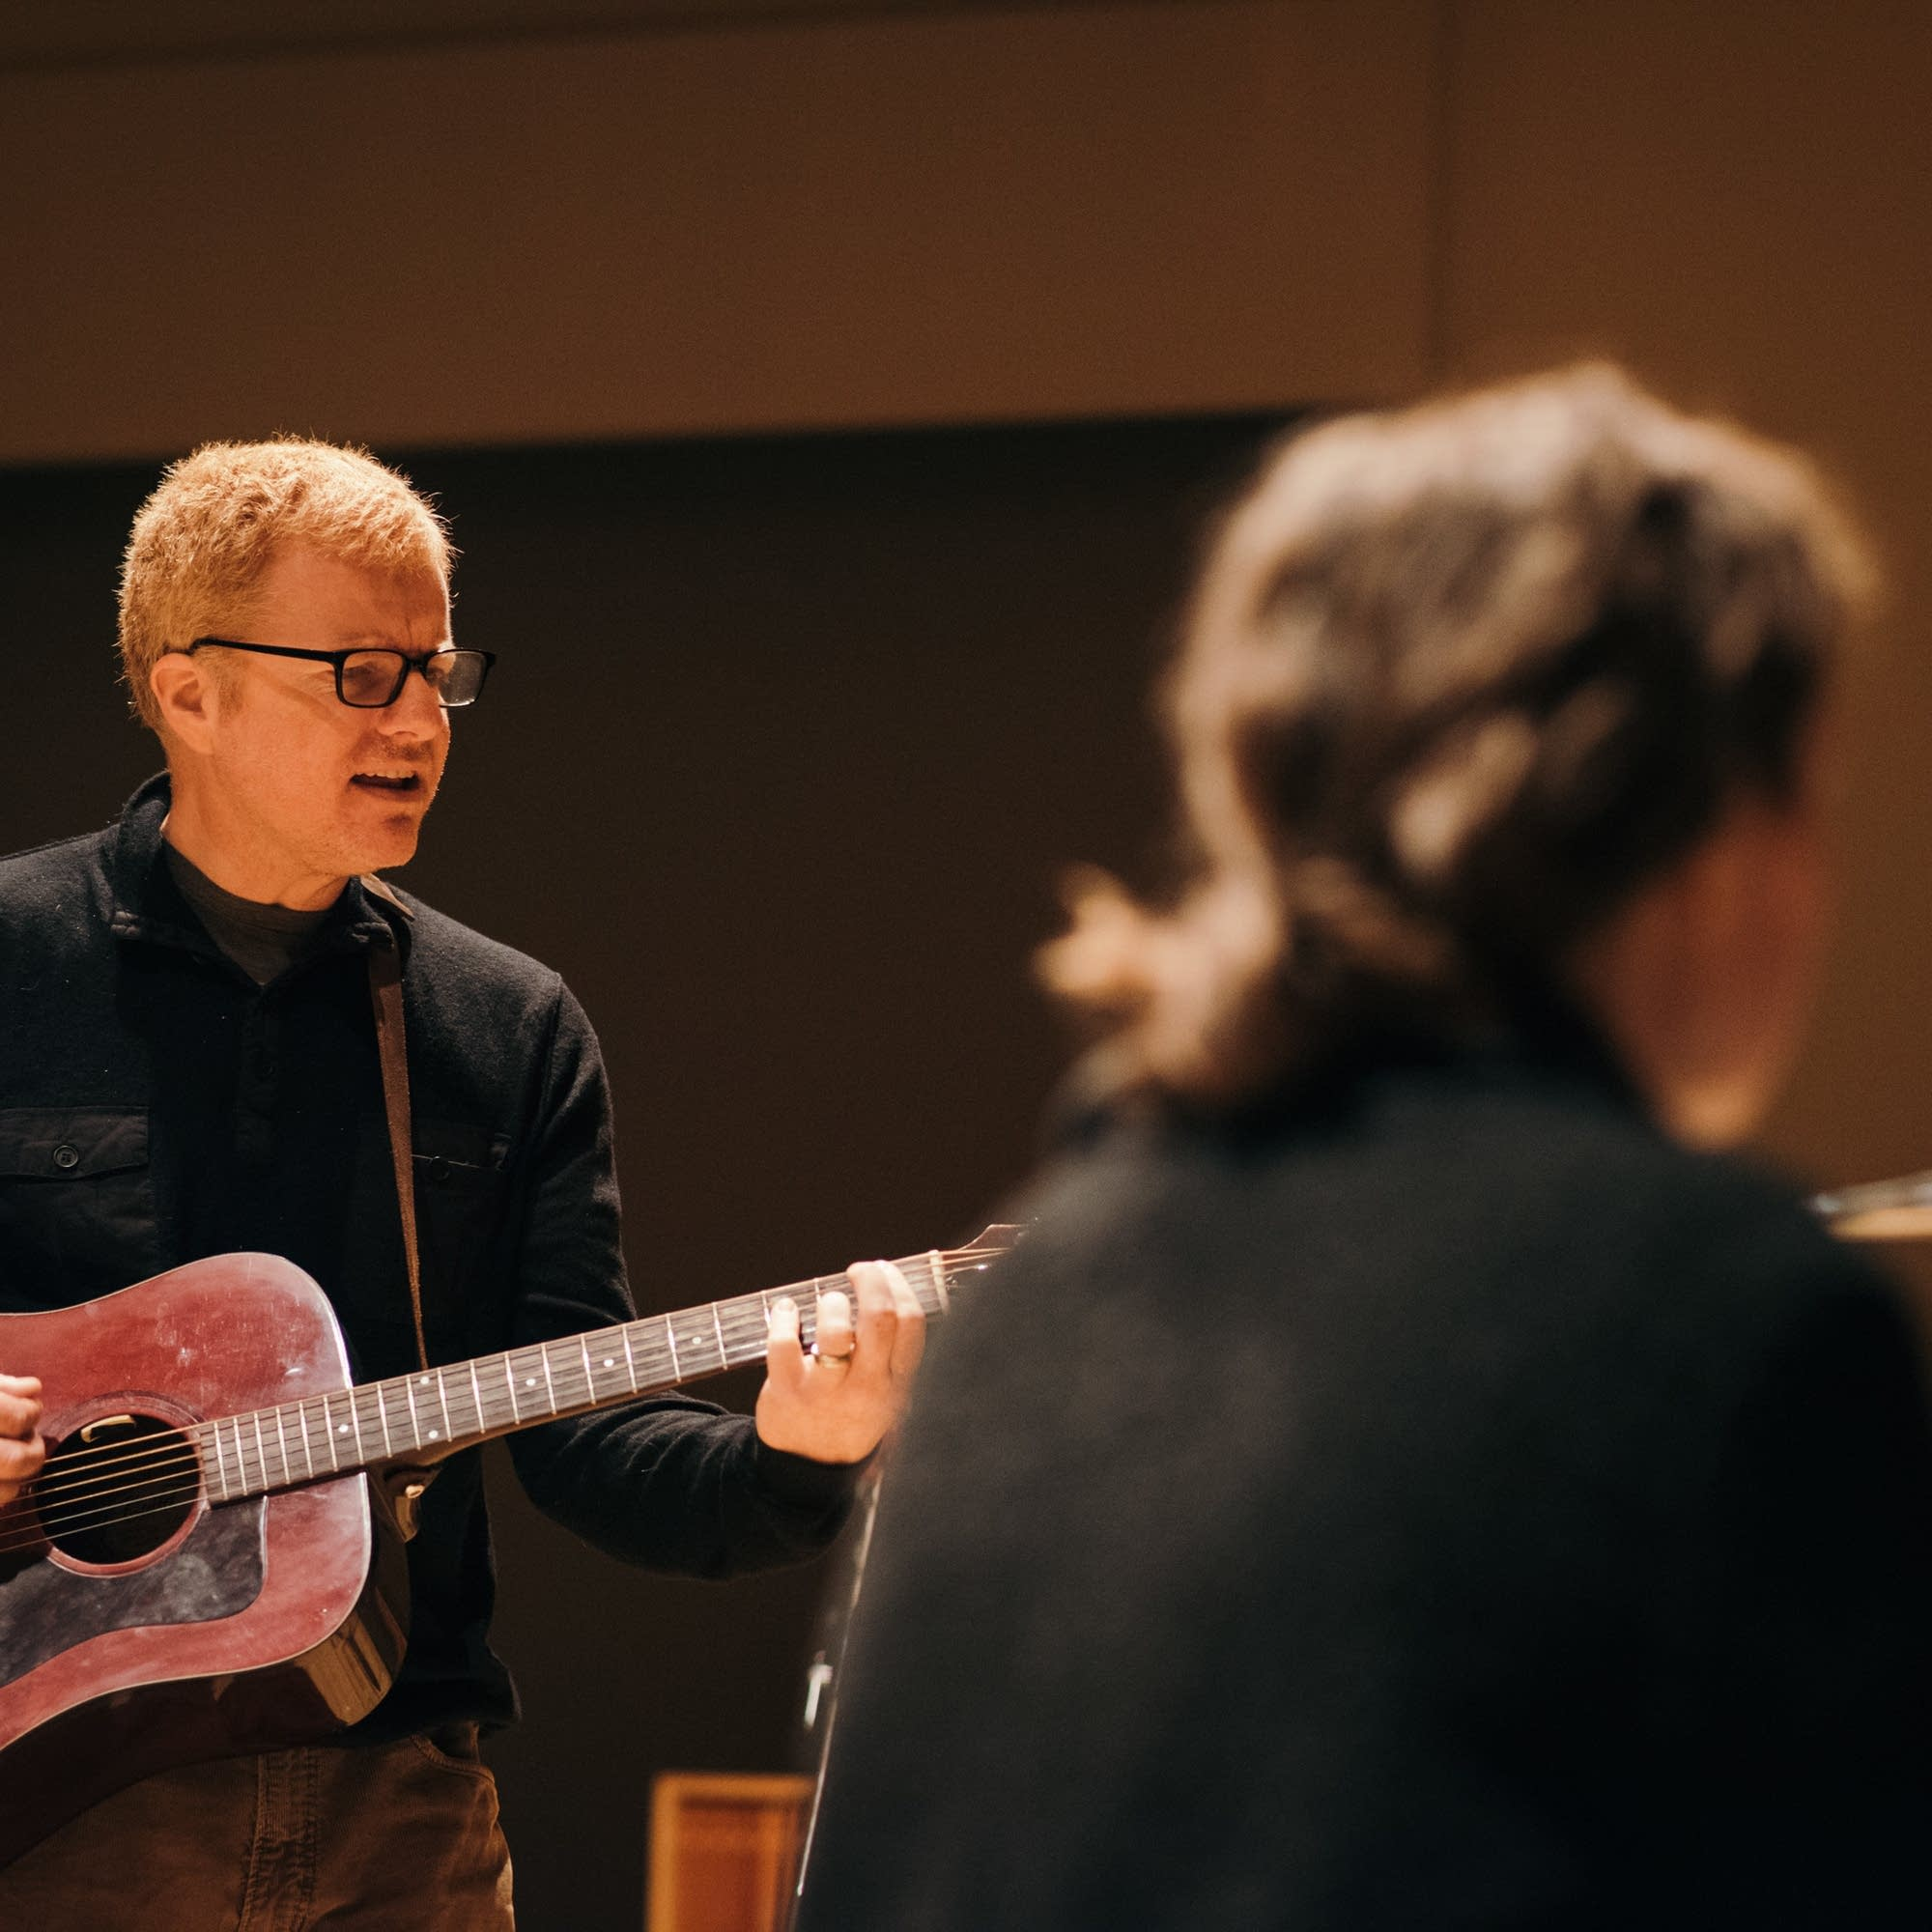 The New Pornographers perform in The Current studio